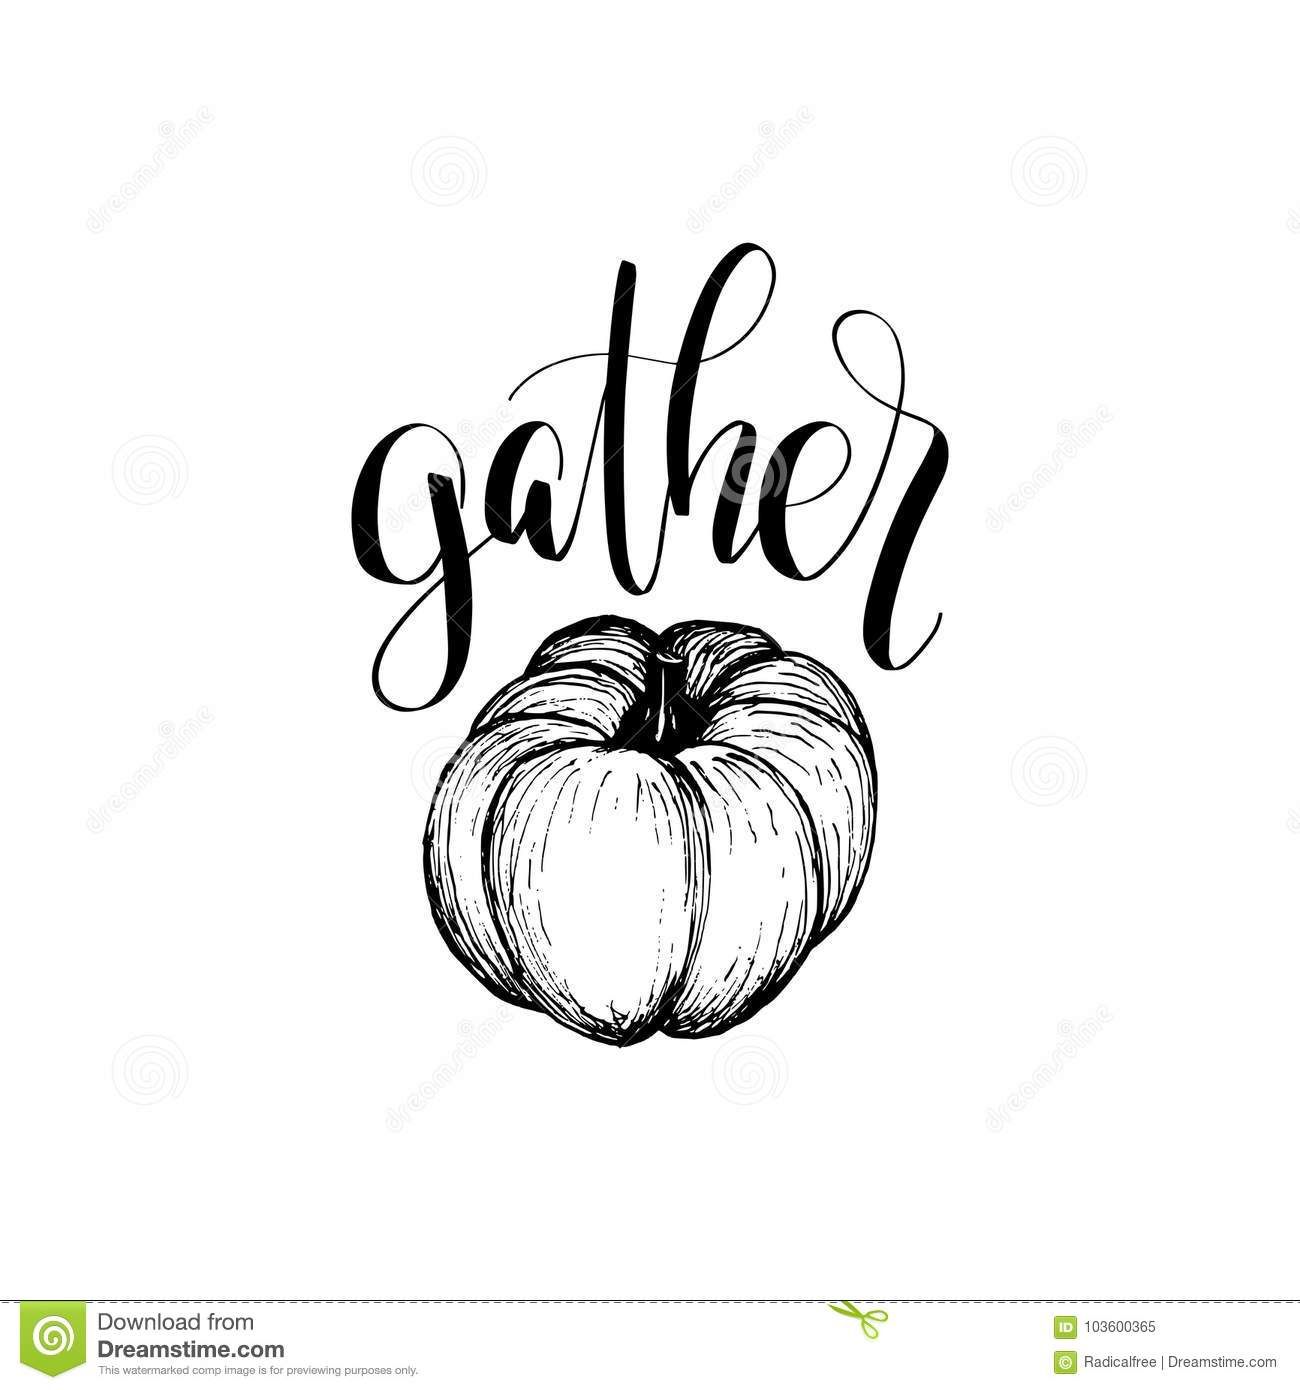 Thanksgiving pumpkin hand sketch illustration for invitation or greeting card template. Gather vector lettering.